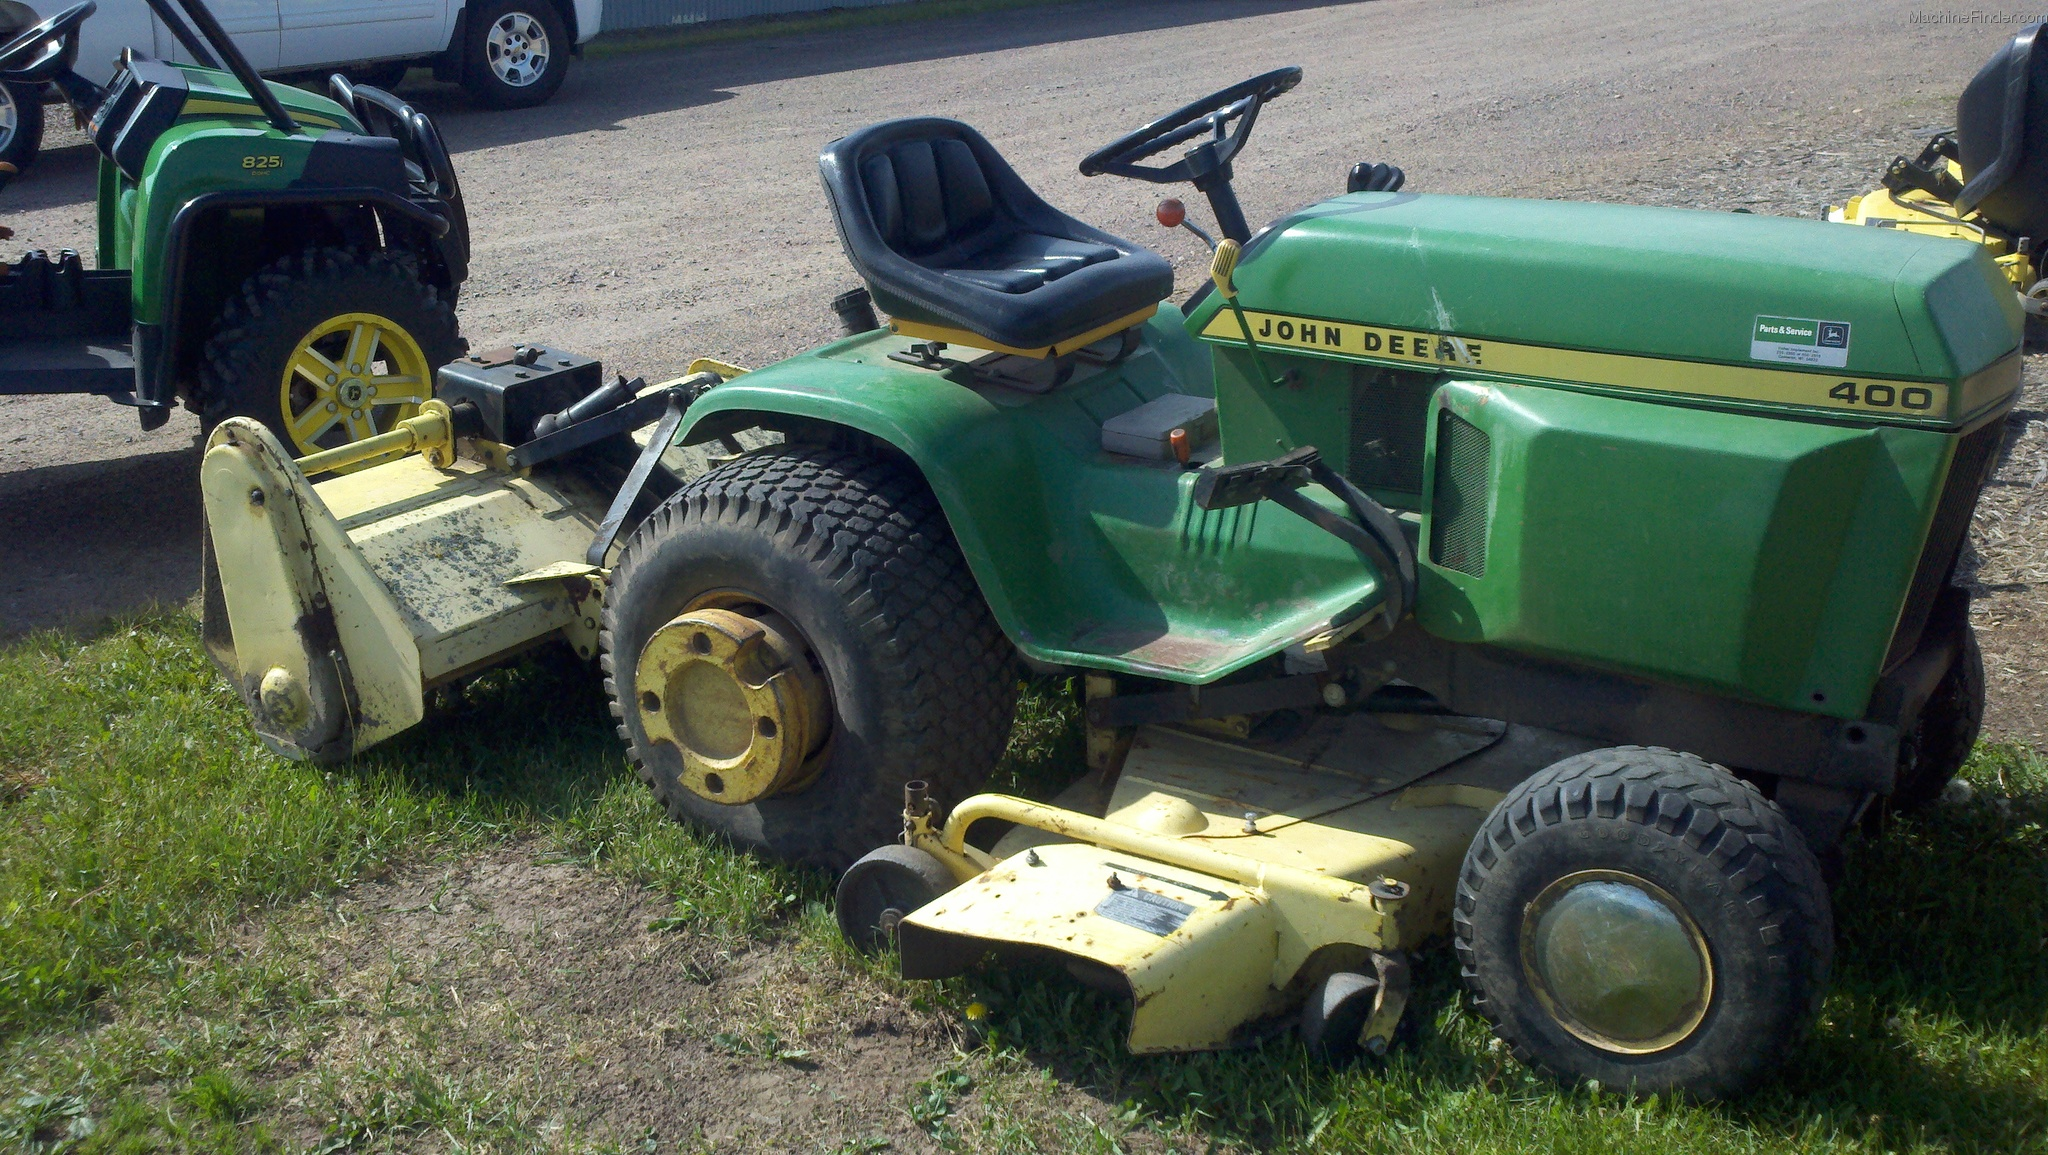 the manuals murray managing tractor collection best garden mower parts john your lawn deere